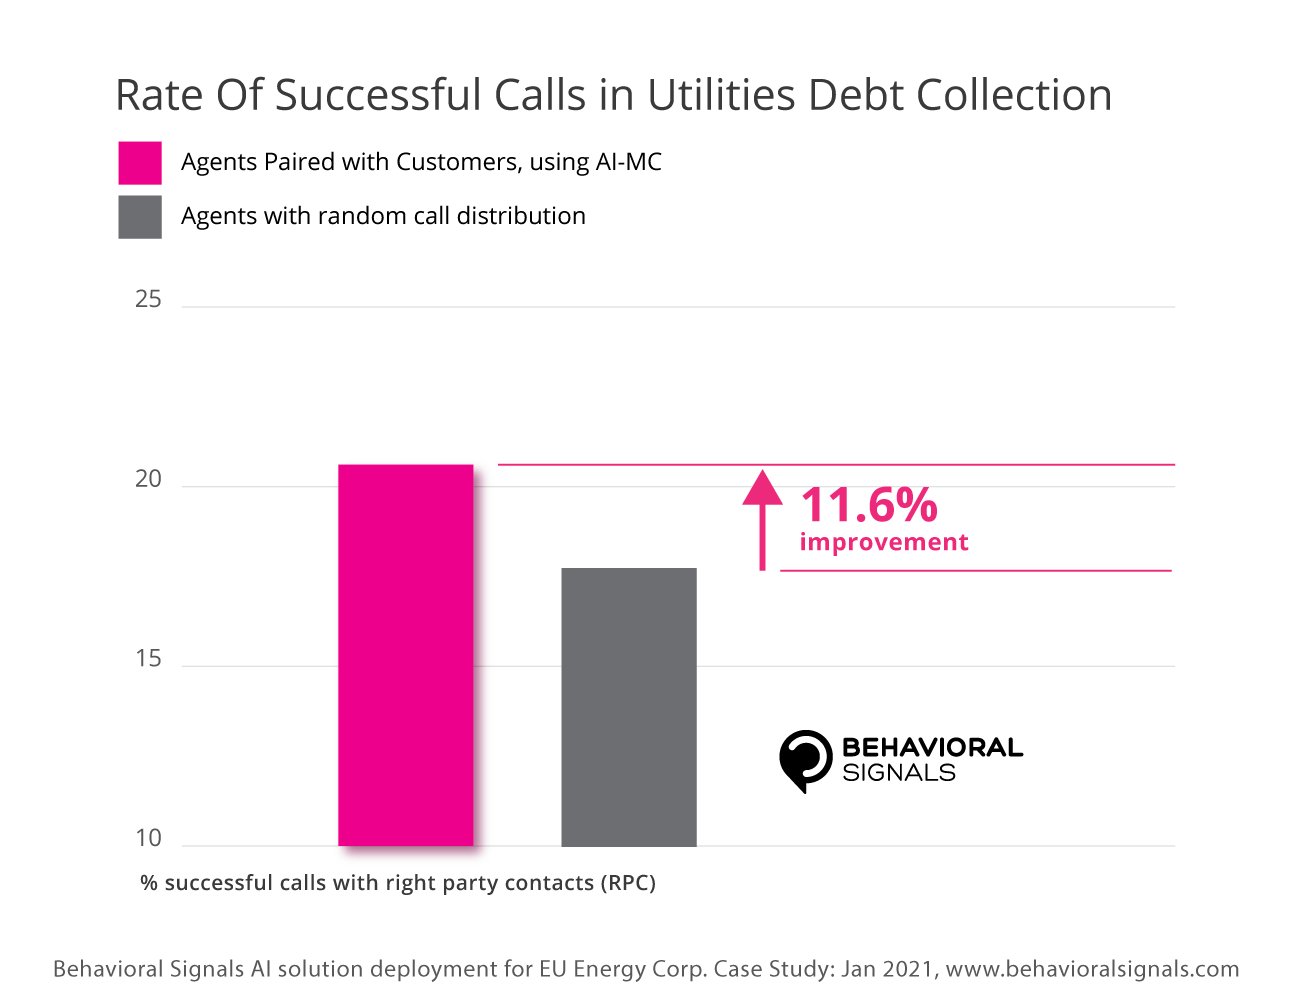 AI-MC Utilities Debt Collection